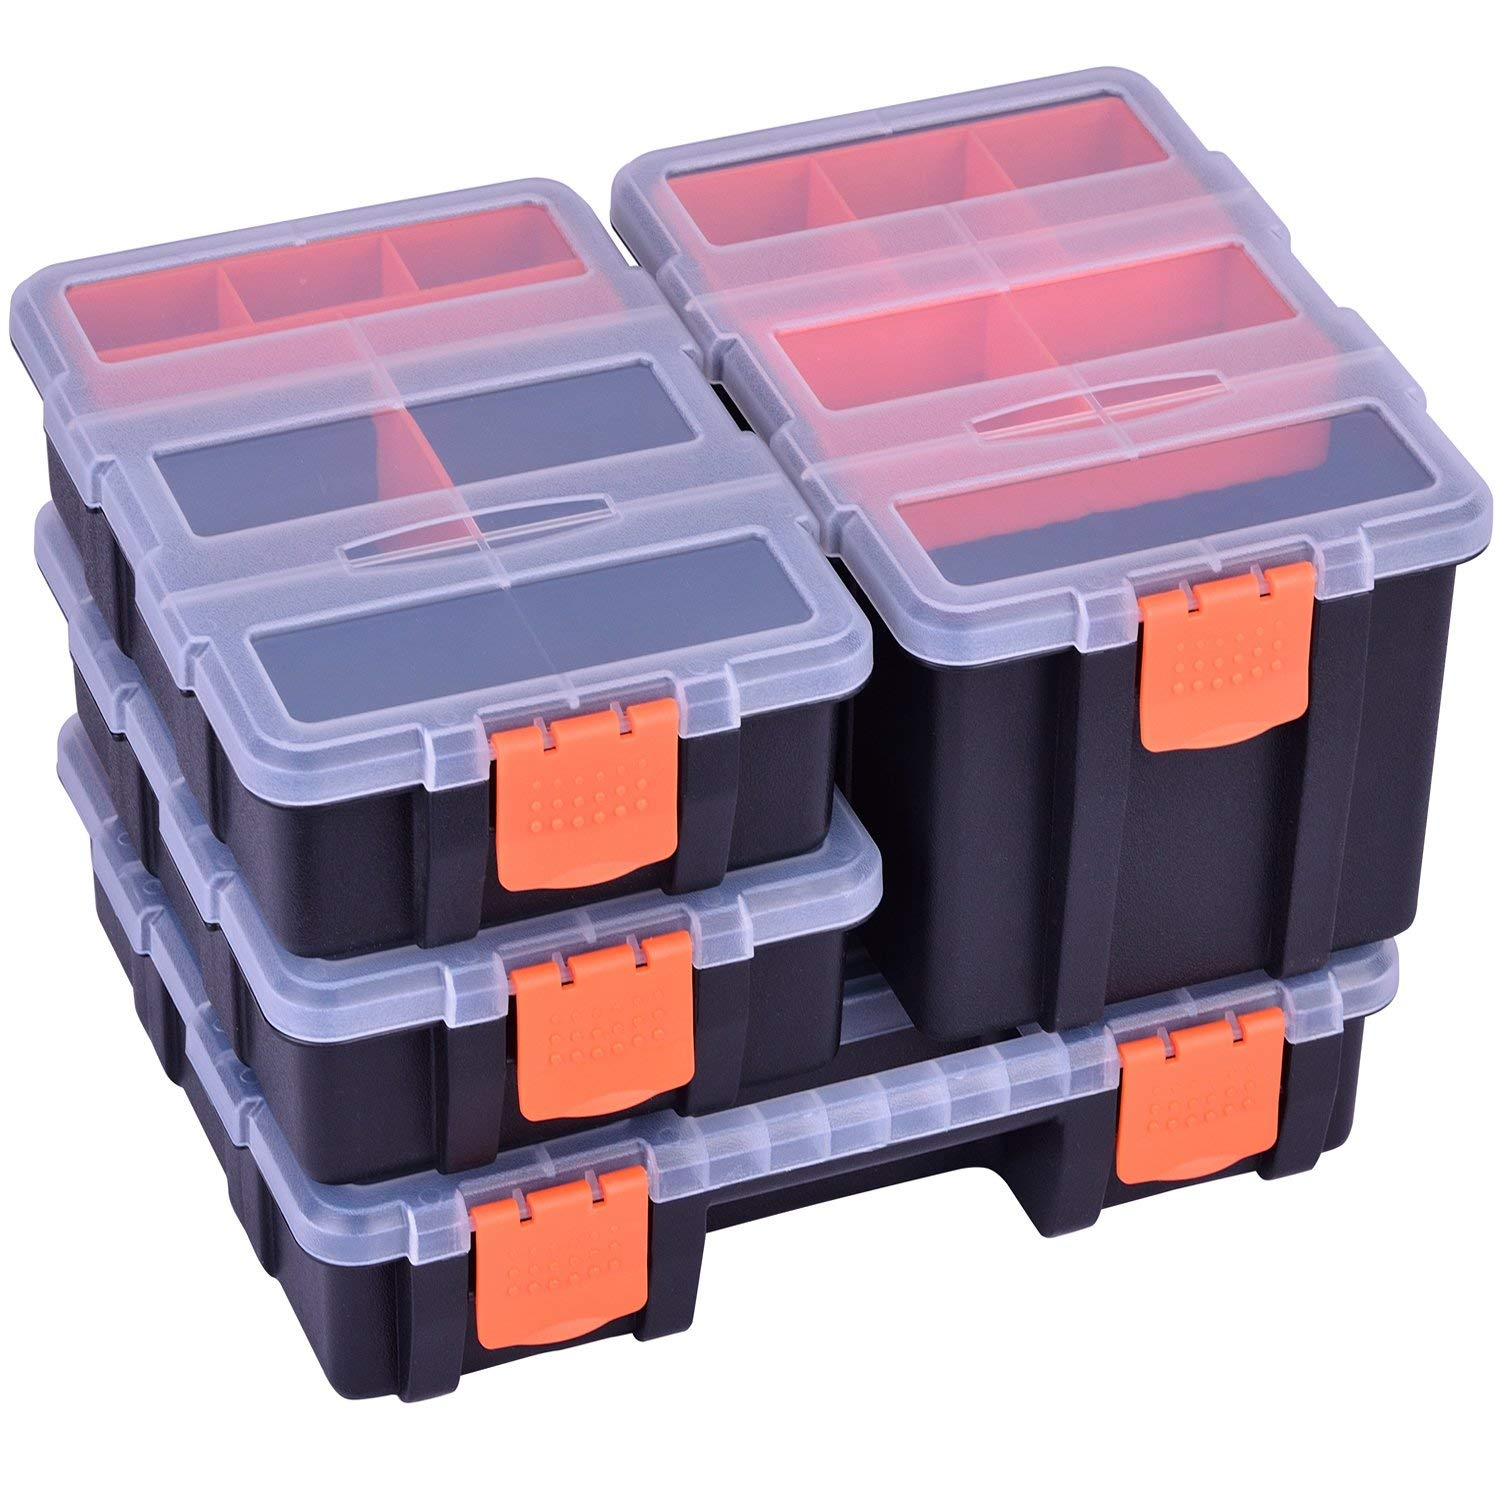 Tool Organizer Tackle Box Storage For Small Parts/Screw/Hardware,Plastic by Easyzon